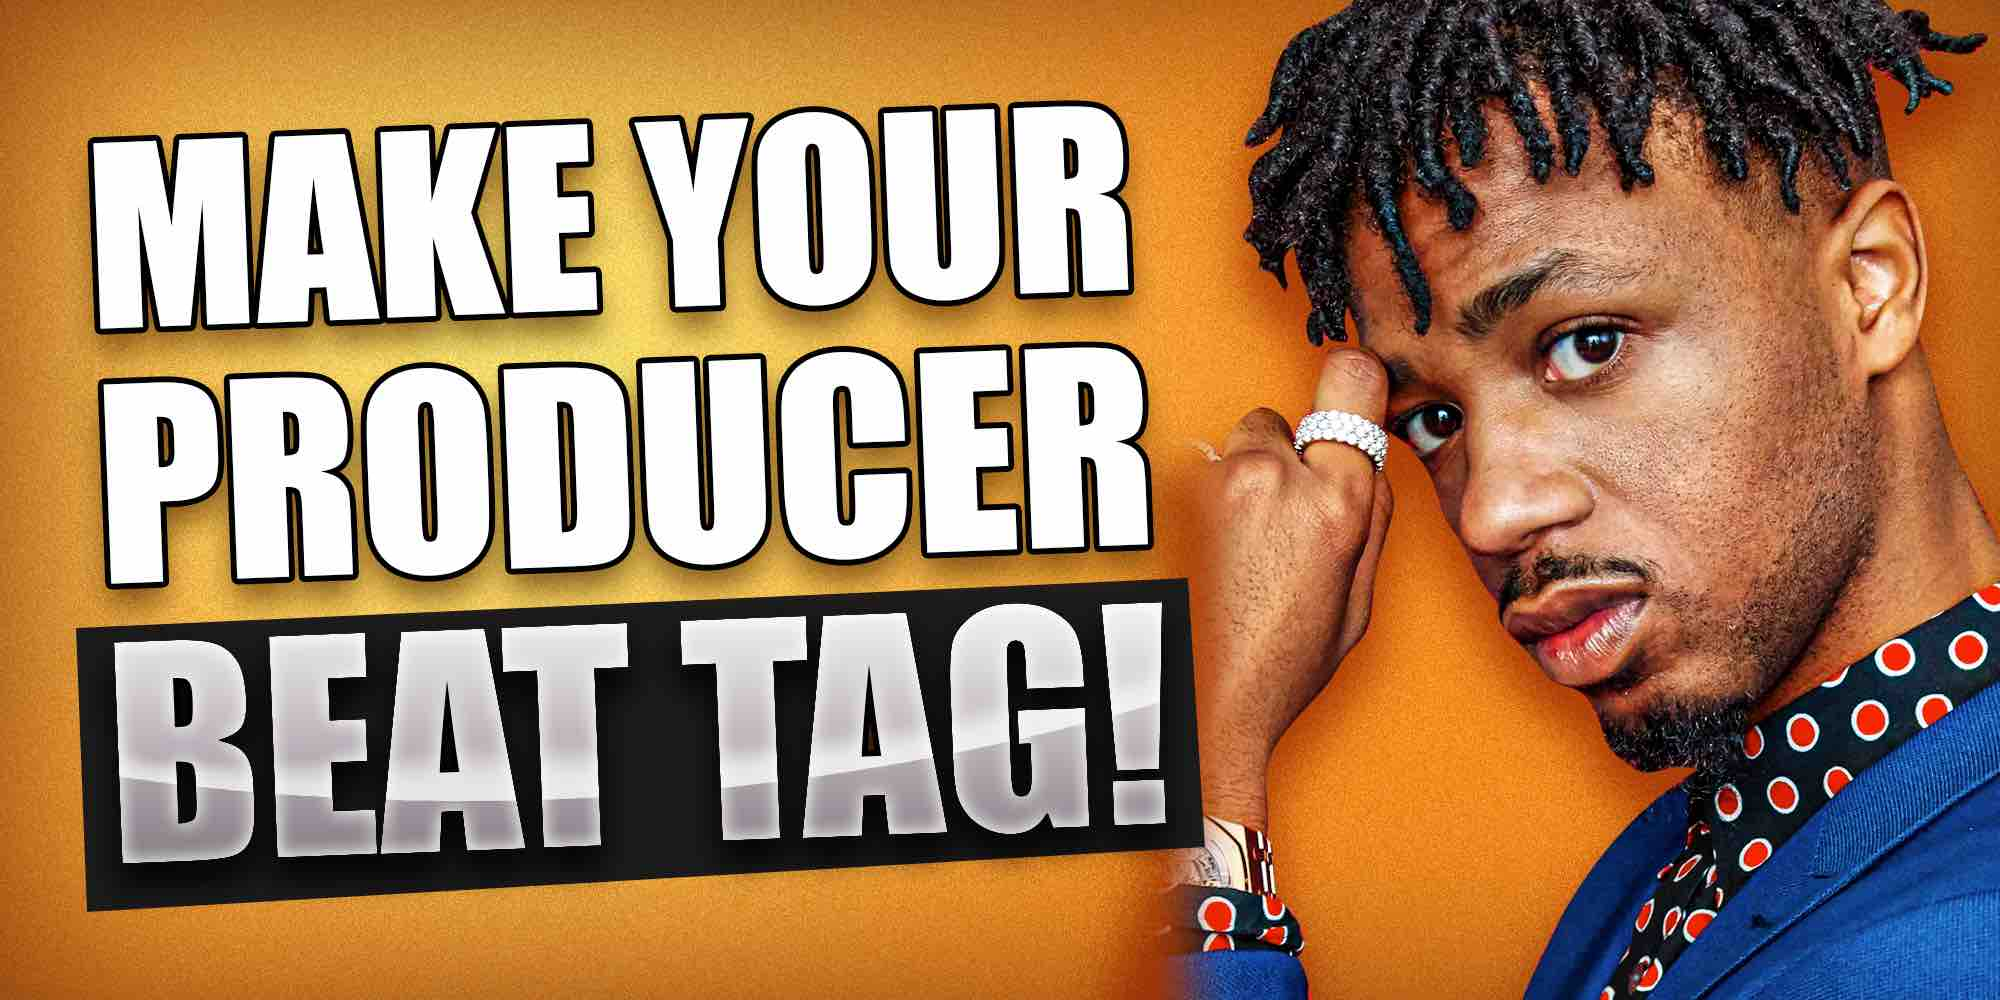 Make Your ProducerBeat Tag